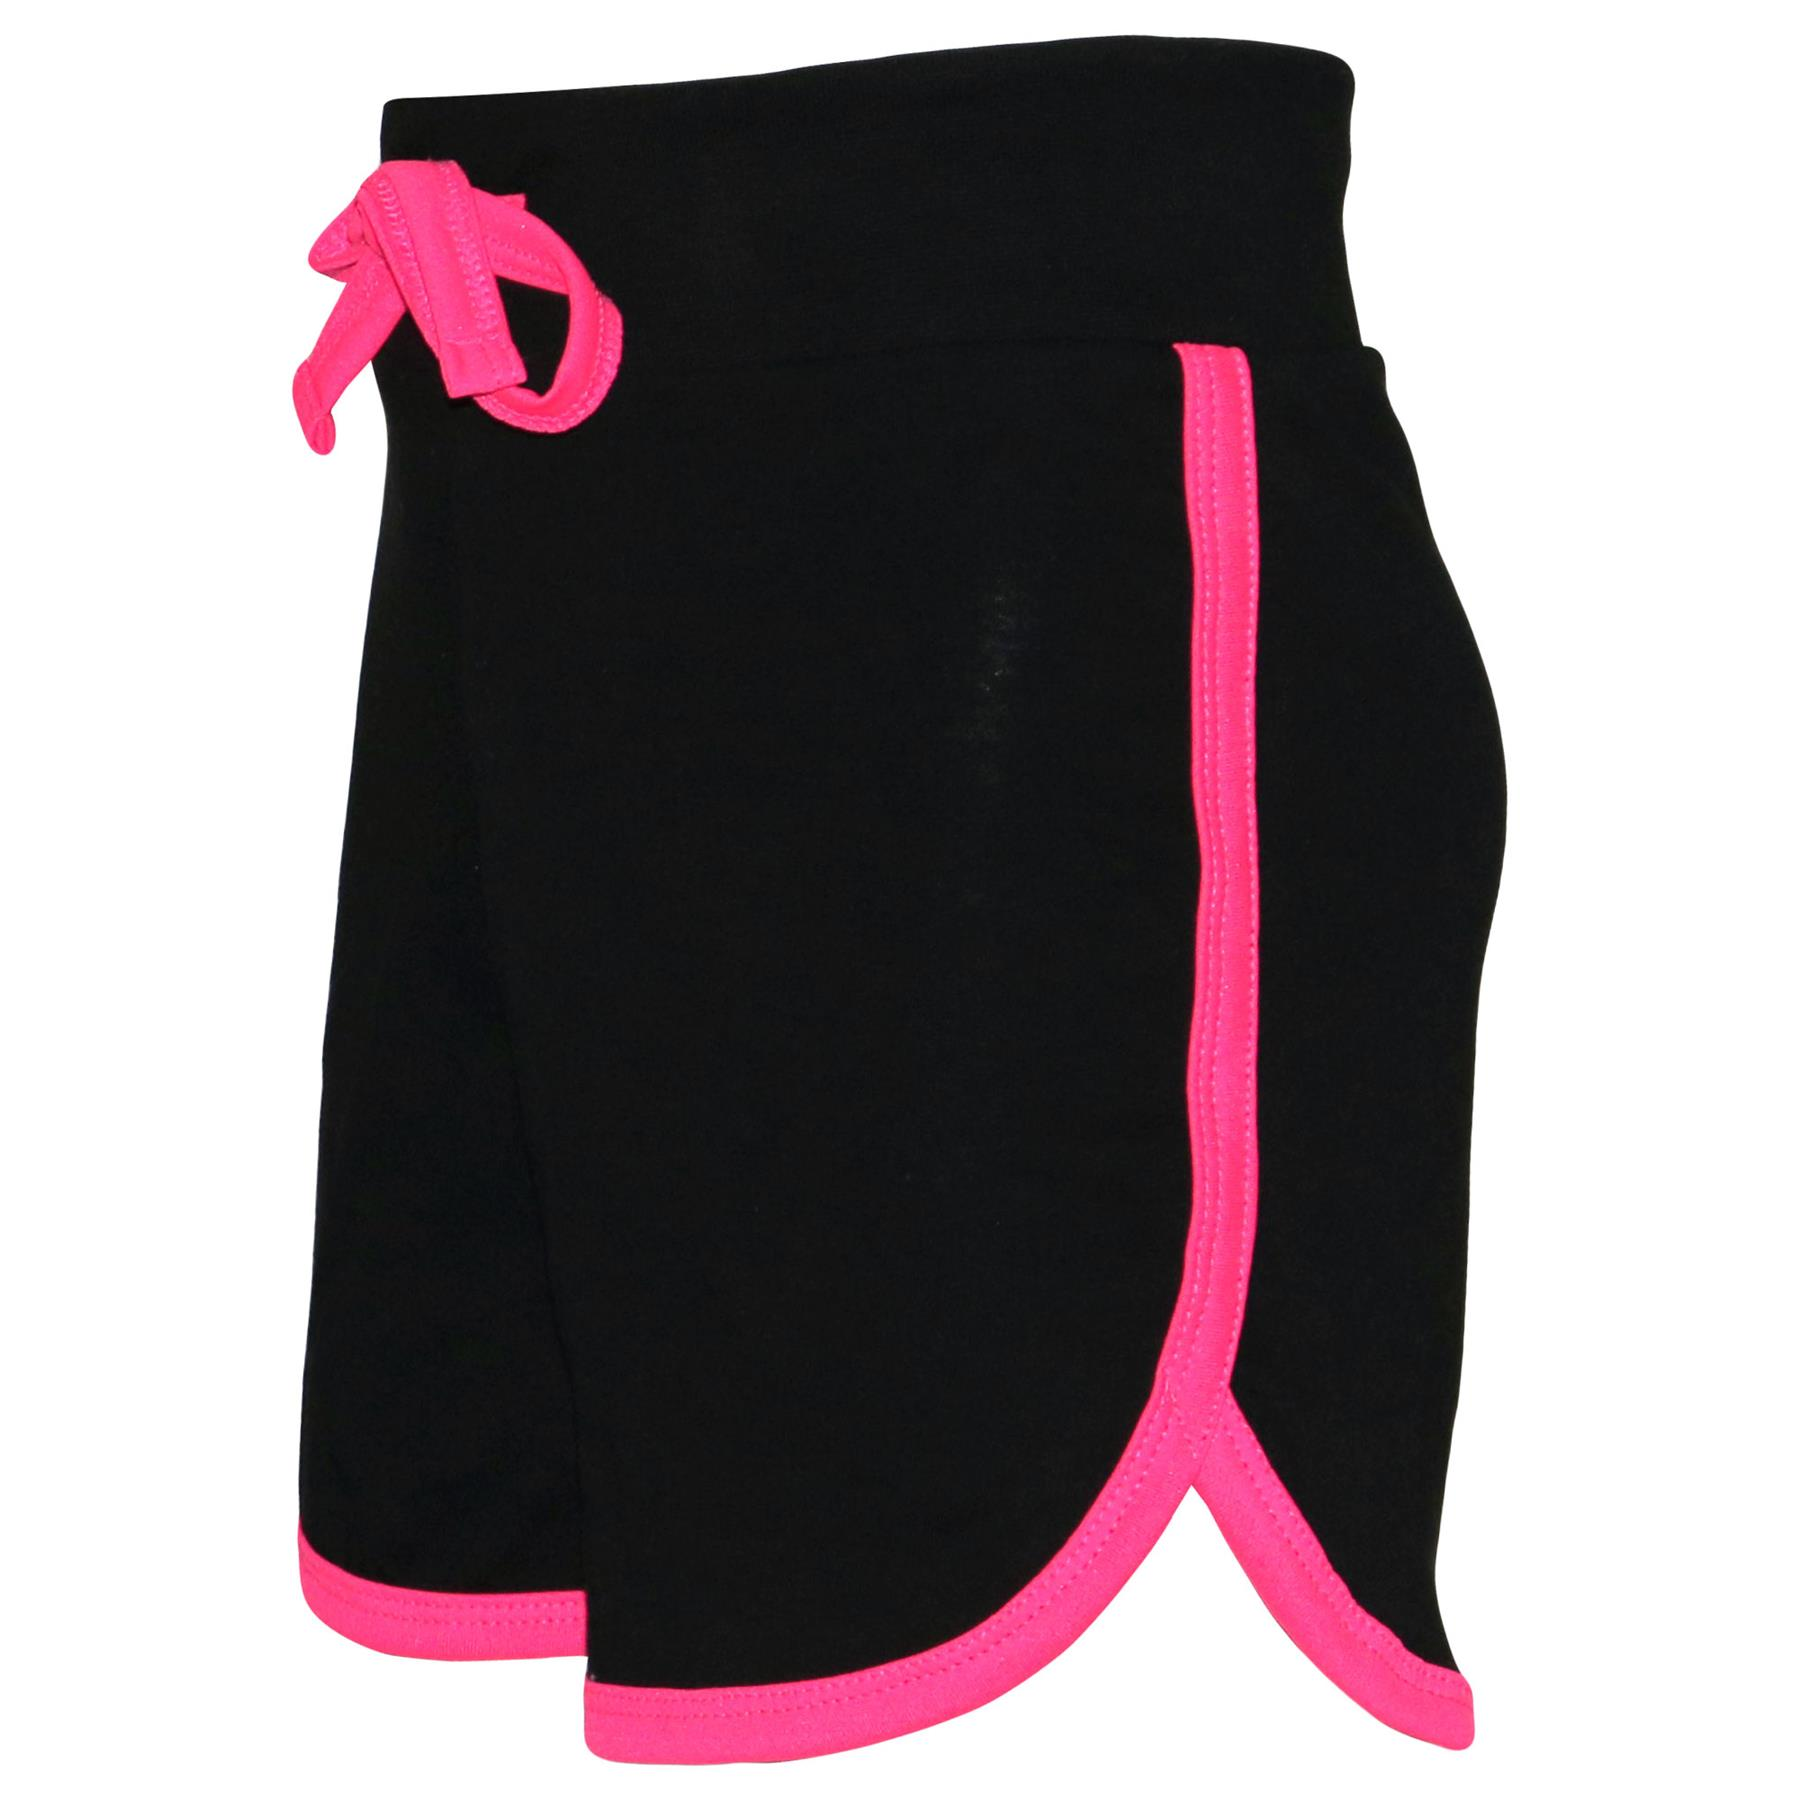 A2Z 4 Kids Kids Girls Shorts 100/% Cotton Gym Dance Sports Trendy Fashion Lilac Summer Hot Short Running Pants New Age 5 6 7 8 9 10 11 12 13 Years